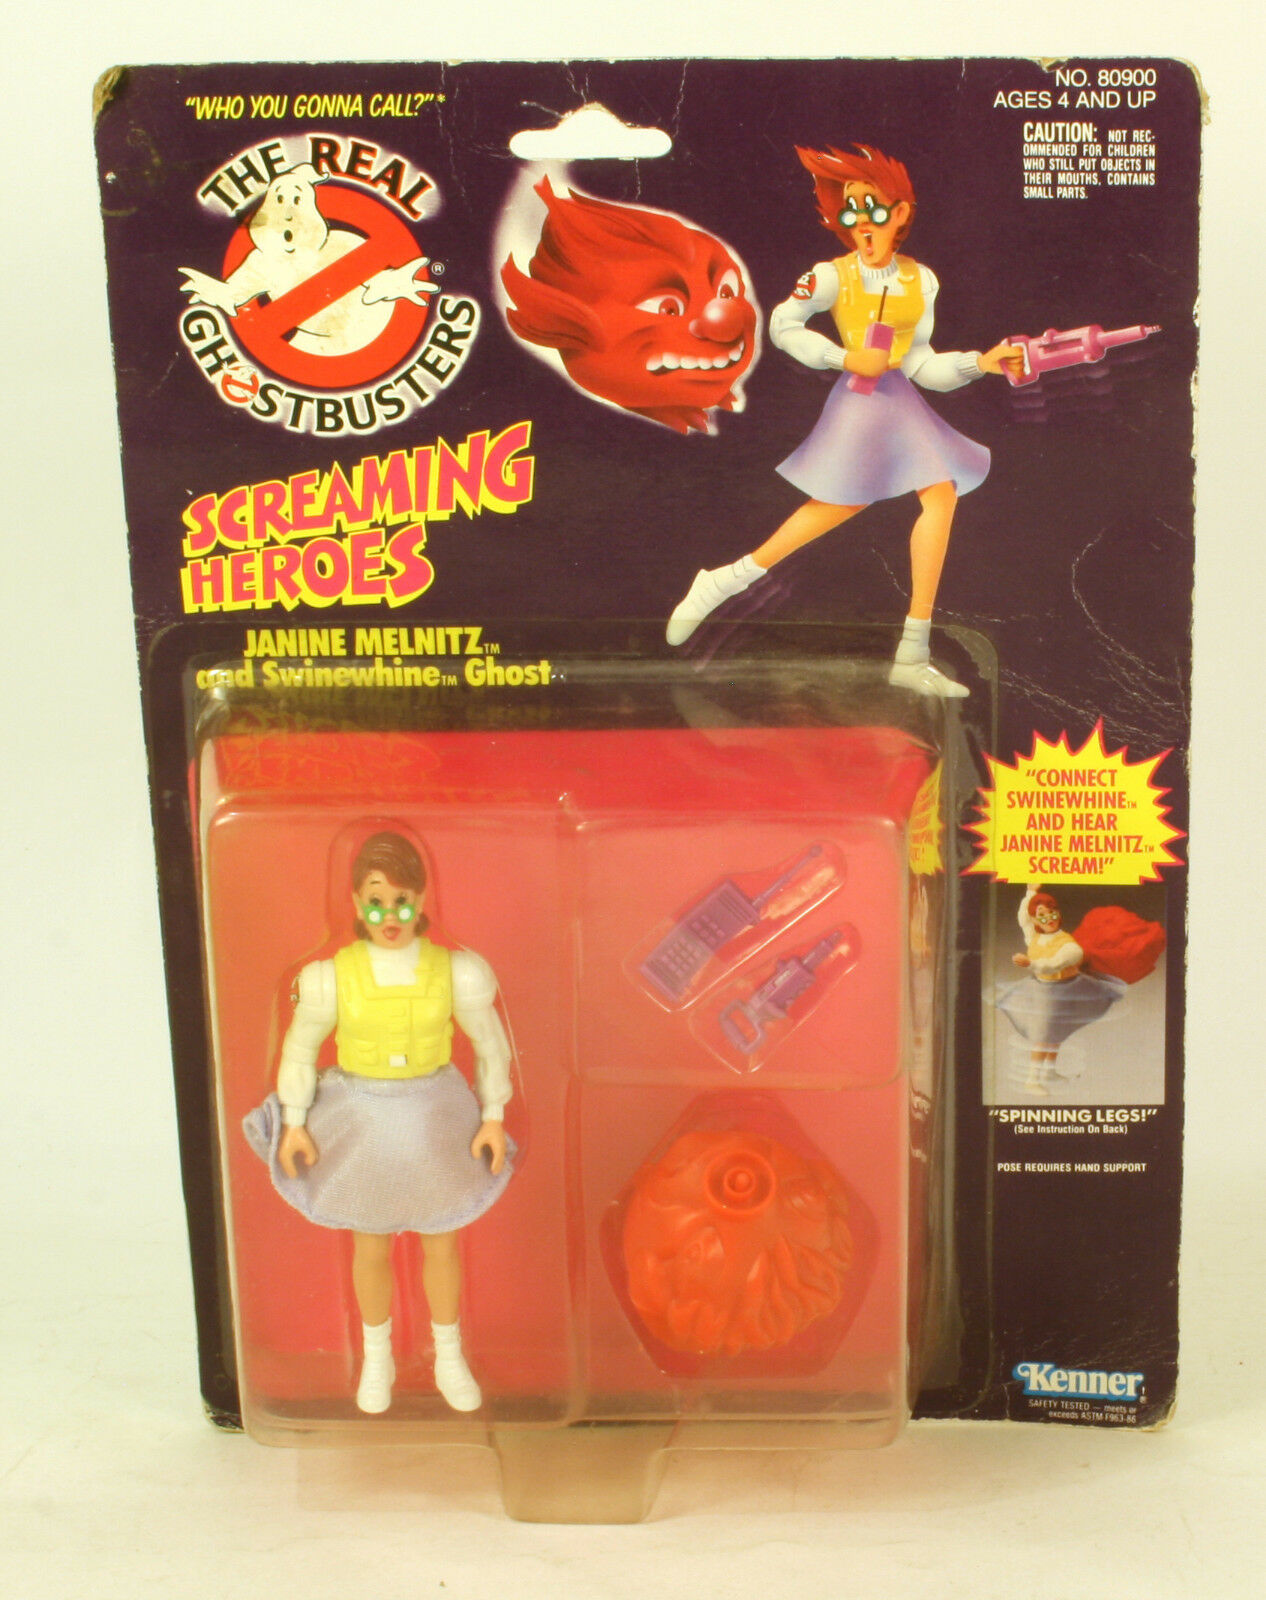 The real ghostbusters sceaming helden janine melnitz moc 1984 kenner